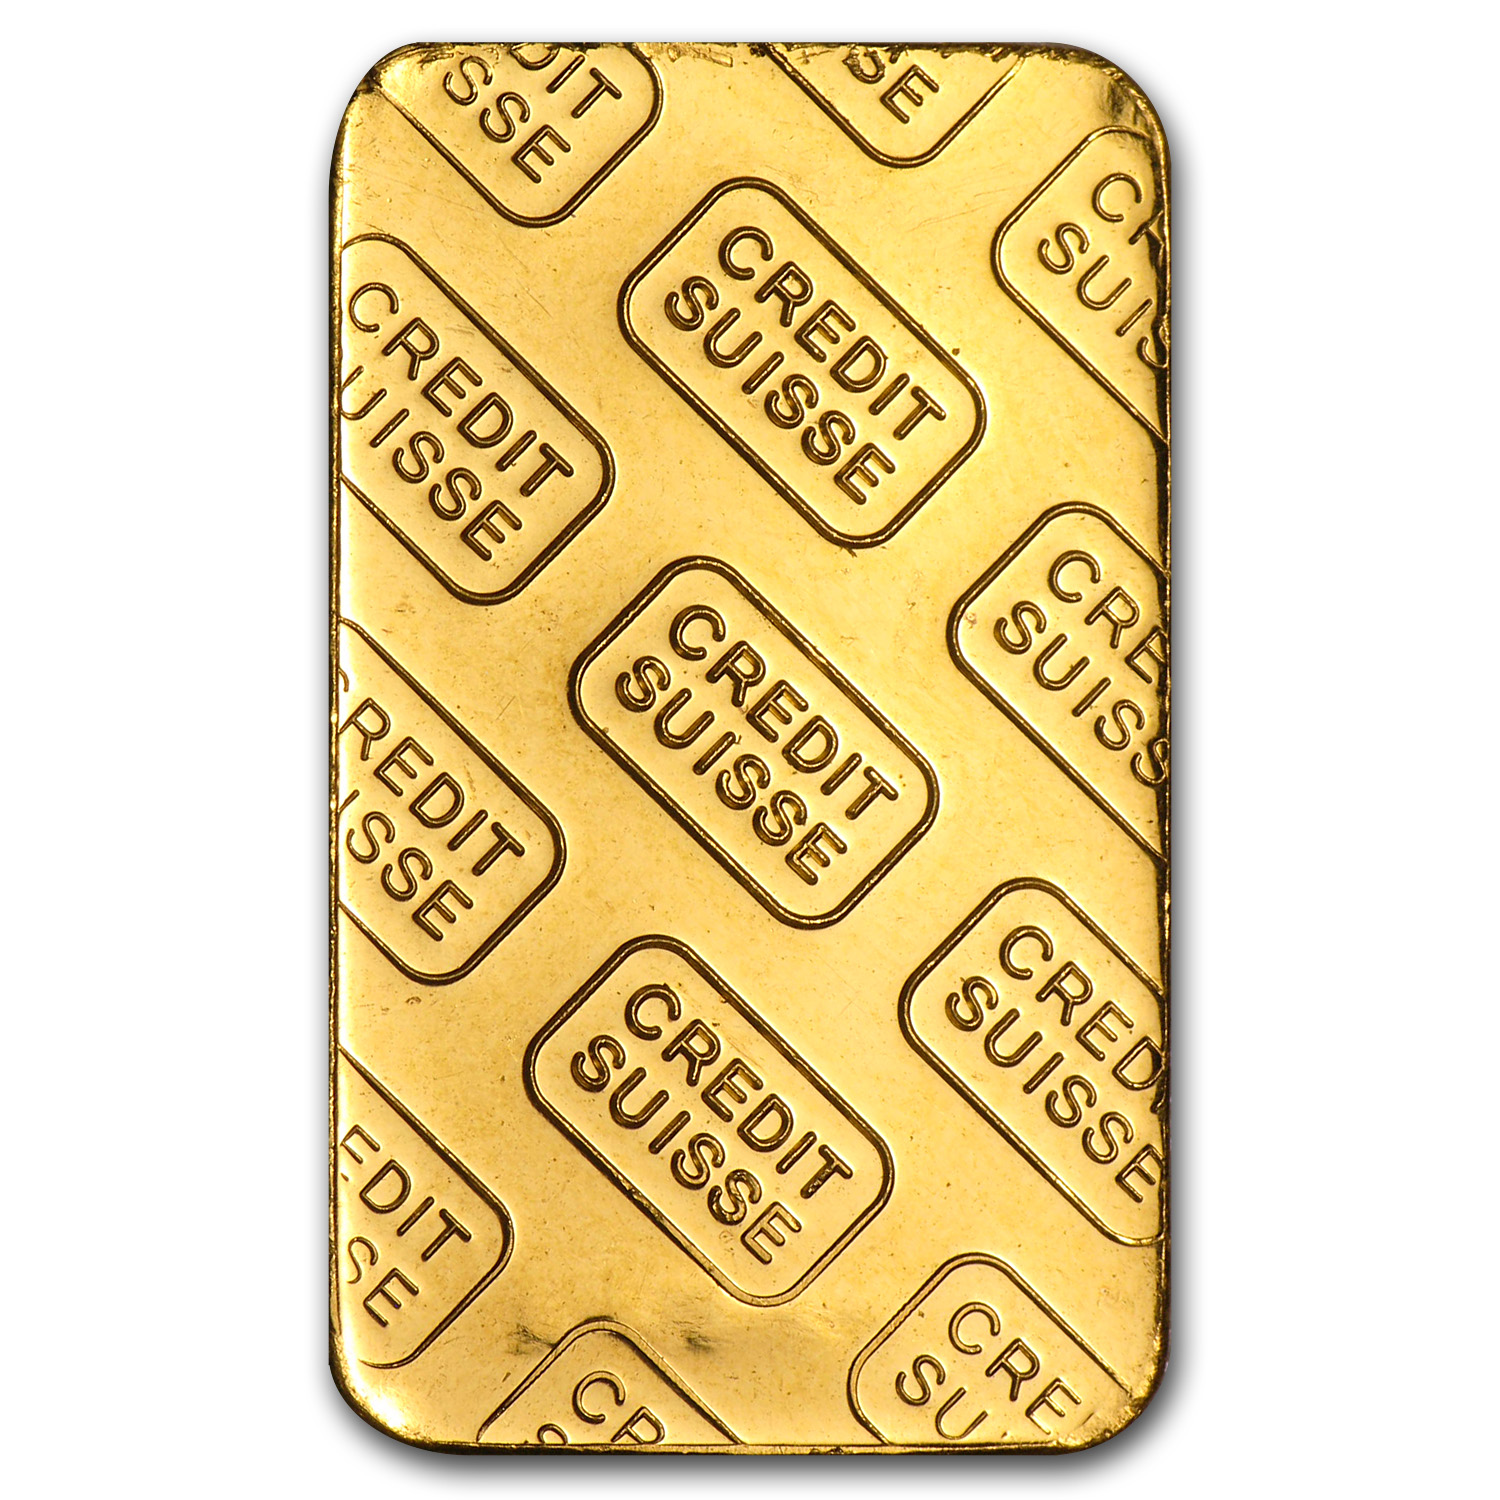 1/4 oz Gold Bar - Secondary Market